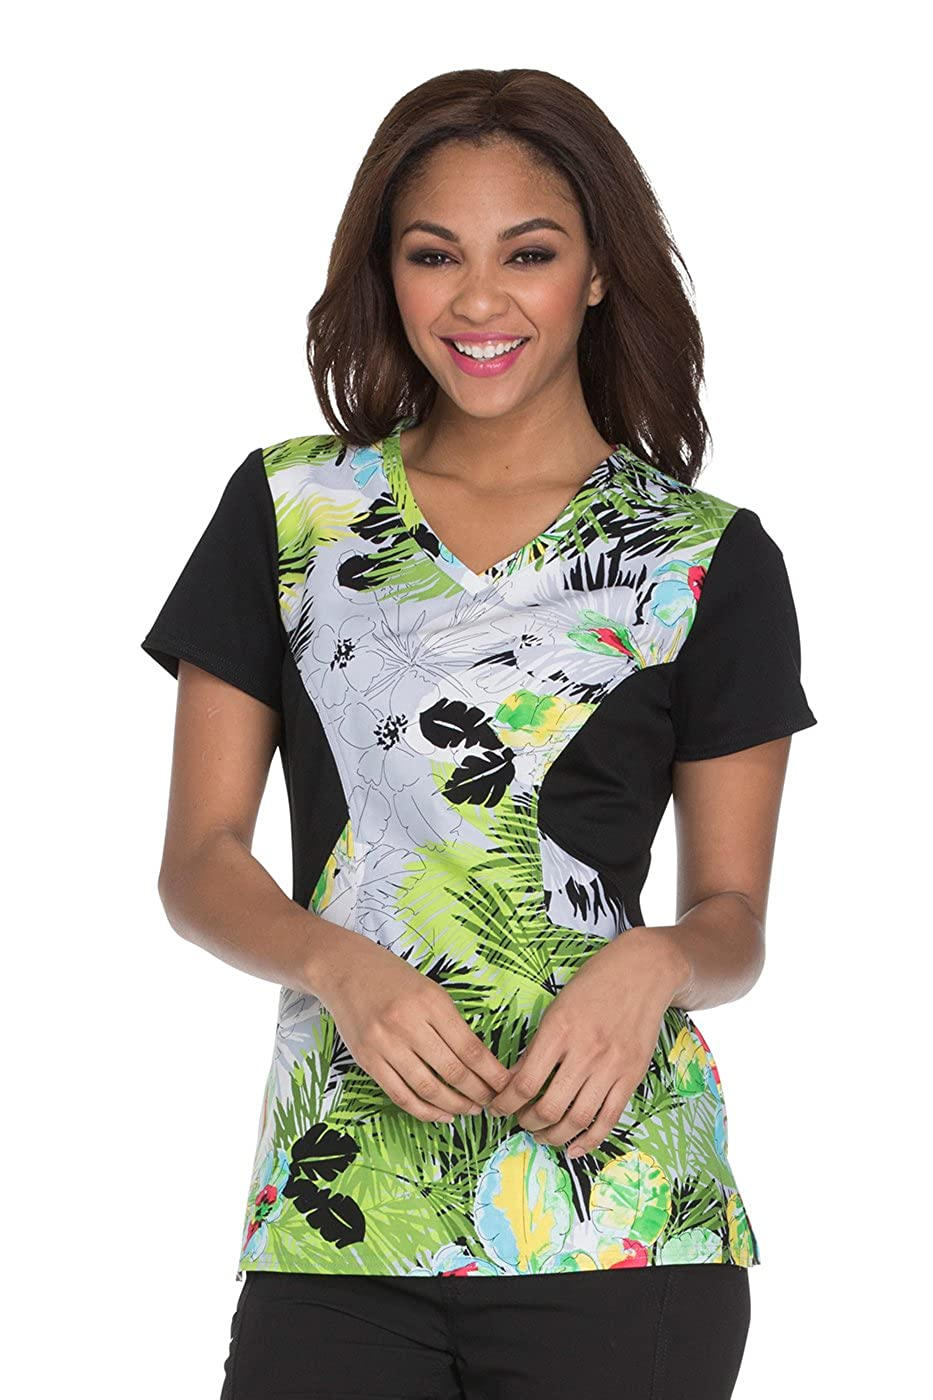 a0e9713a52a Amazon.com: Careisma by Sofia Vergara Women's V-Neck Animal Print Scrub Top:  Clothing